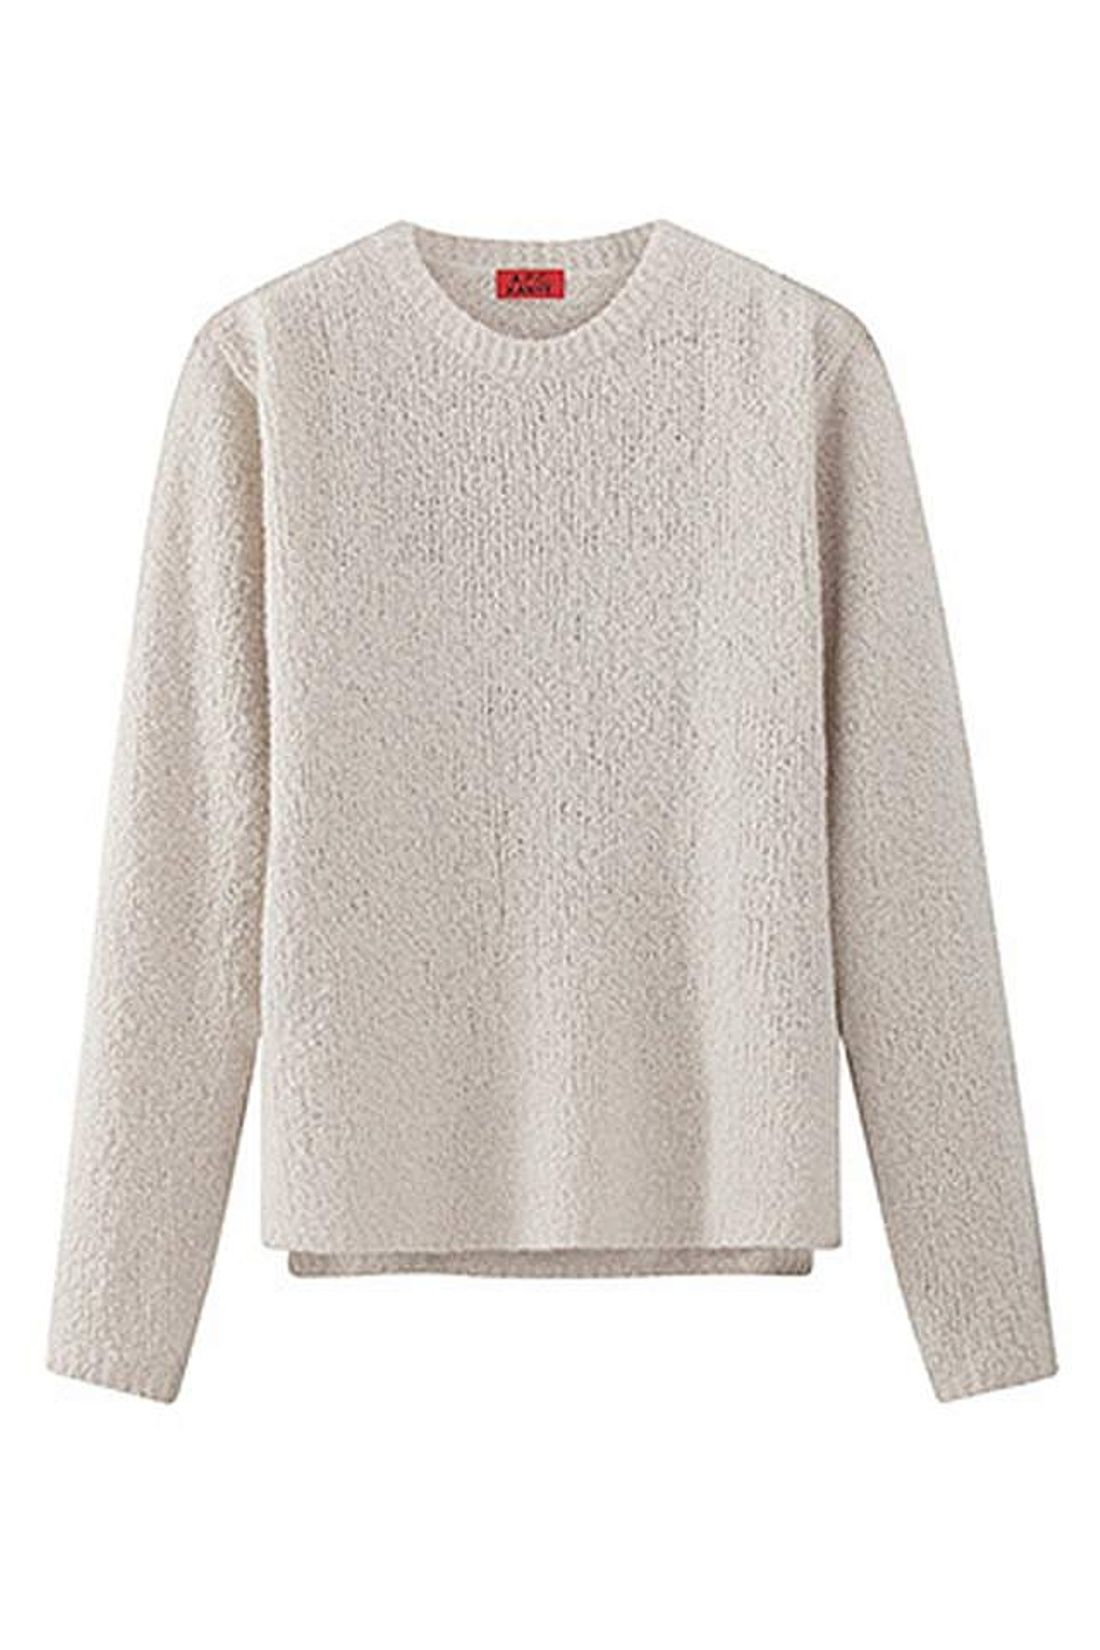 2a69893db83 A.P.C. X Kanye West Airport Sweater Size S  450 - Grailed